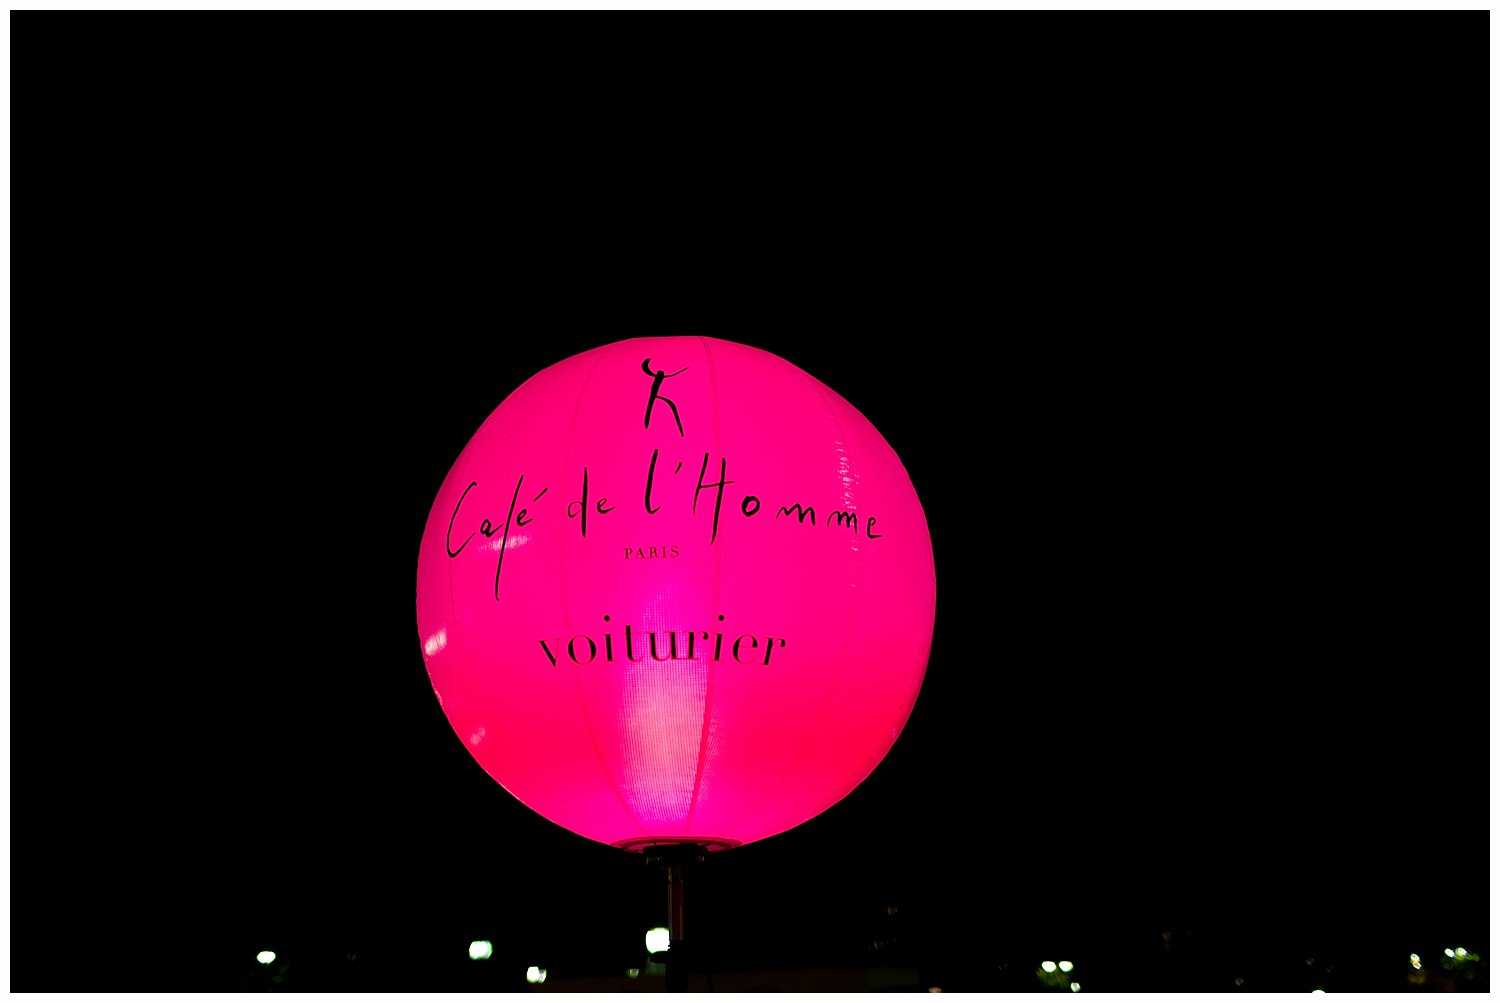 hot pink sign for Café de l'Homme in Paris, France - glowing restaurant sign at night